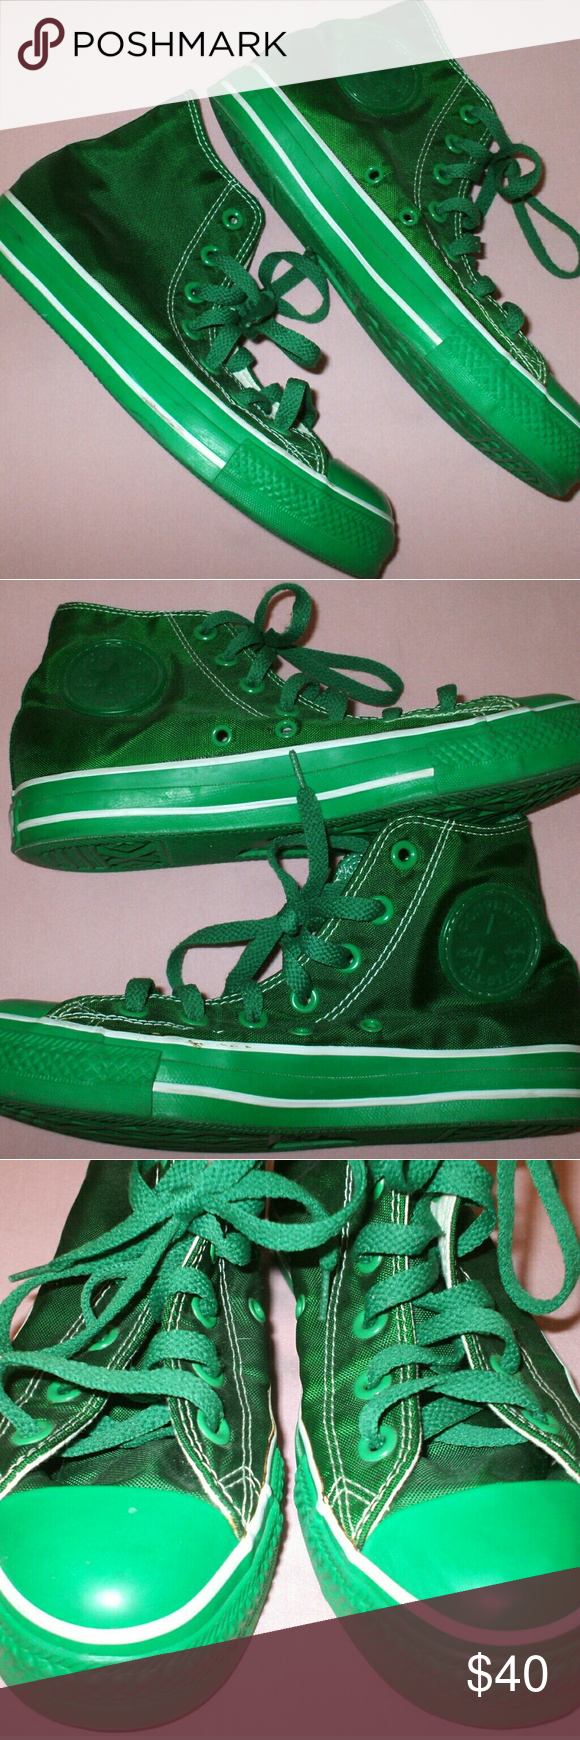 47e71b5a8b574 Green Shiny Converse High Top Shoes I wore these shoes once. They are in  green condition. The fabric is shiny green. Really unique pair of Converse!!